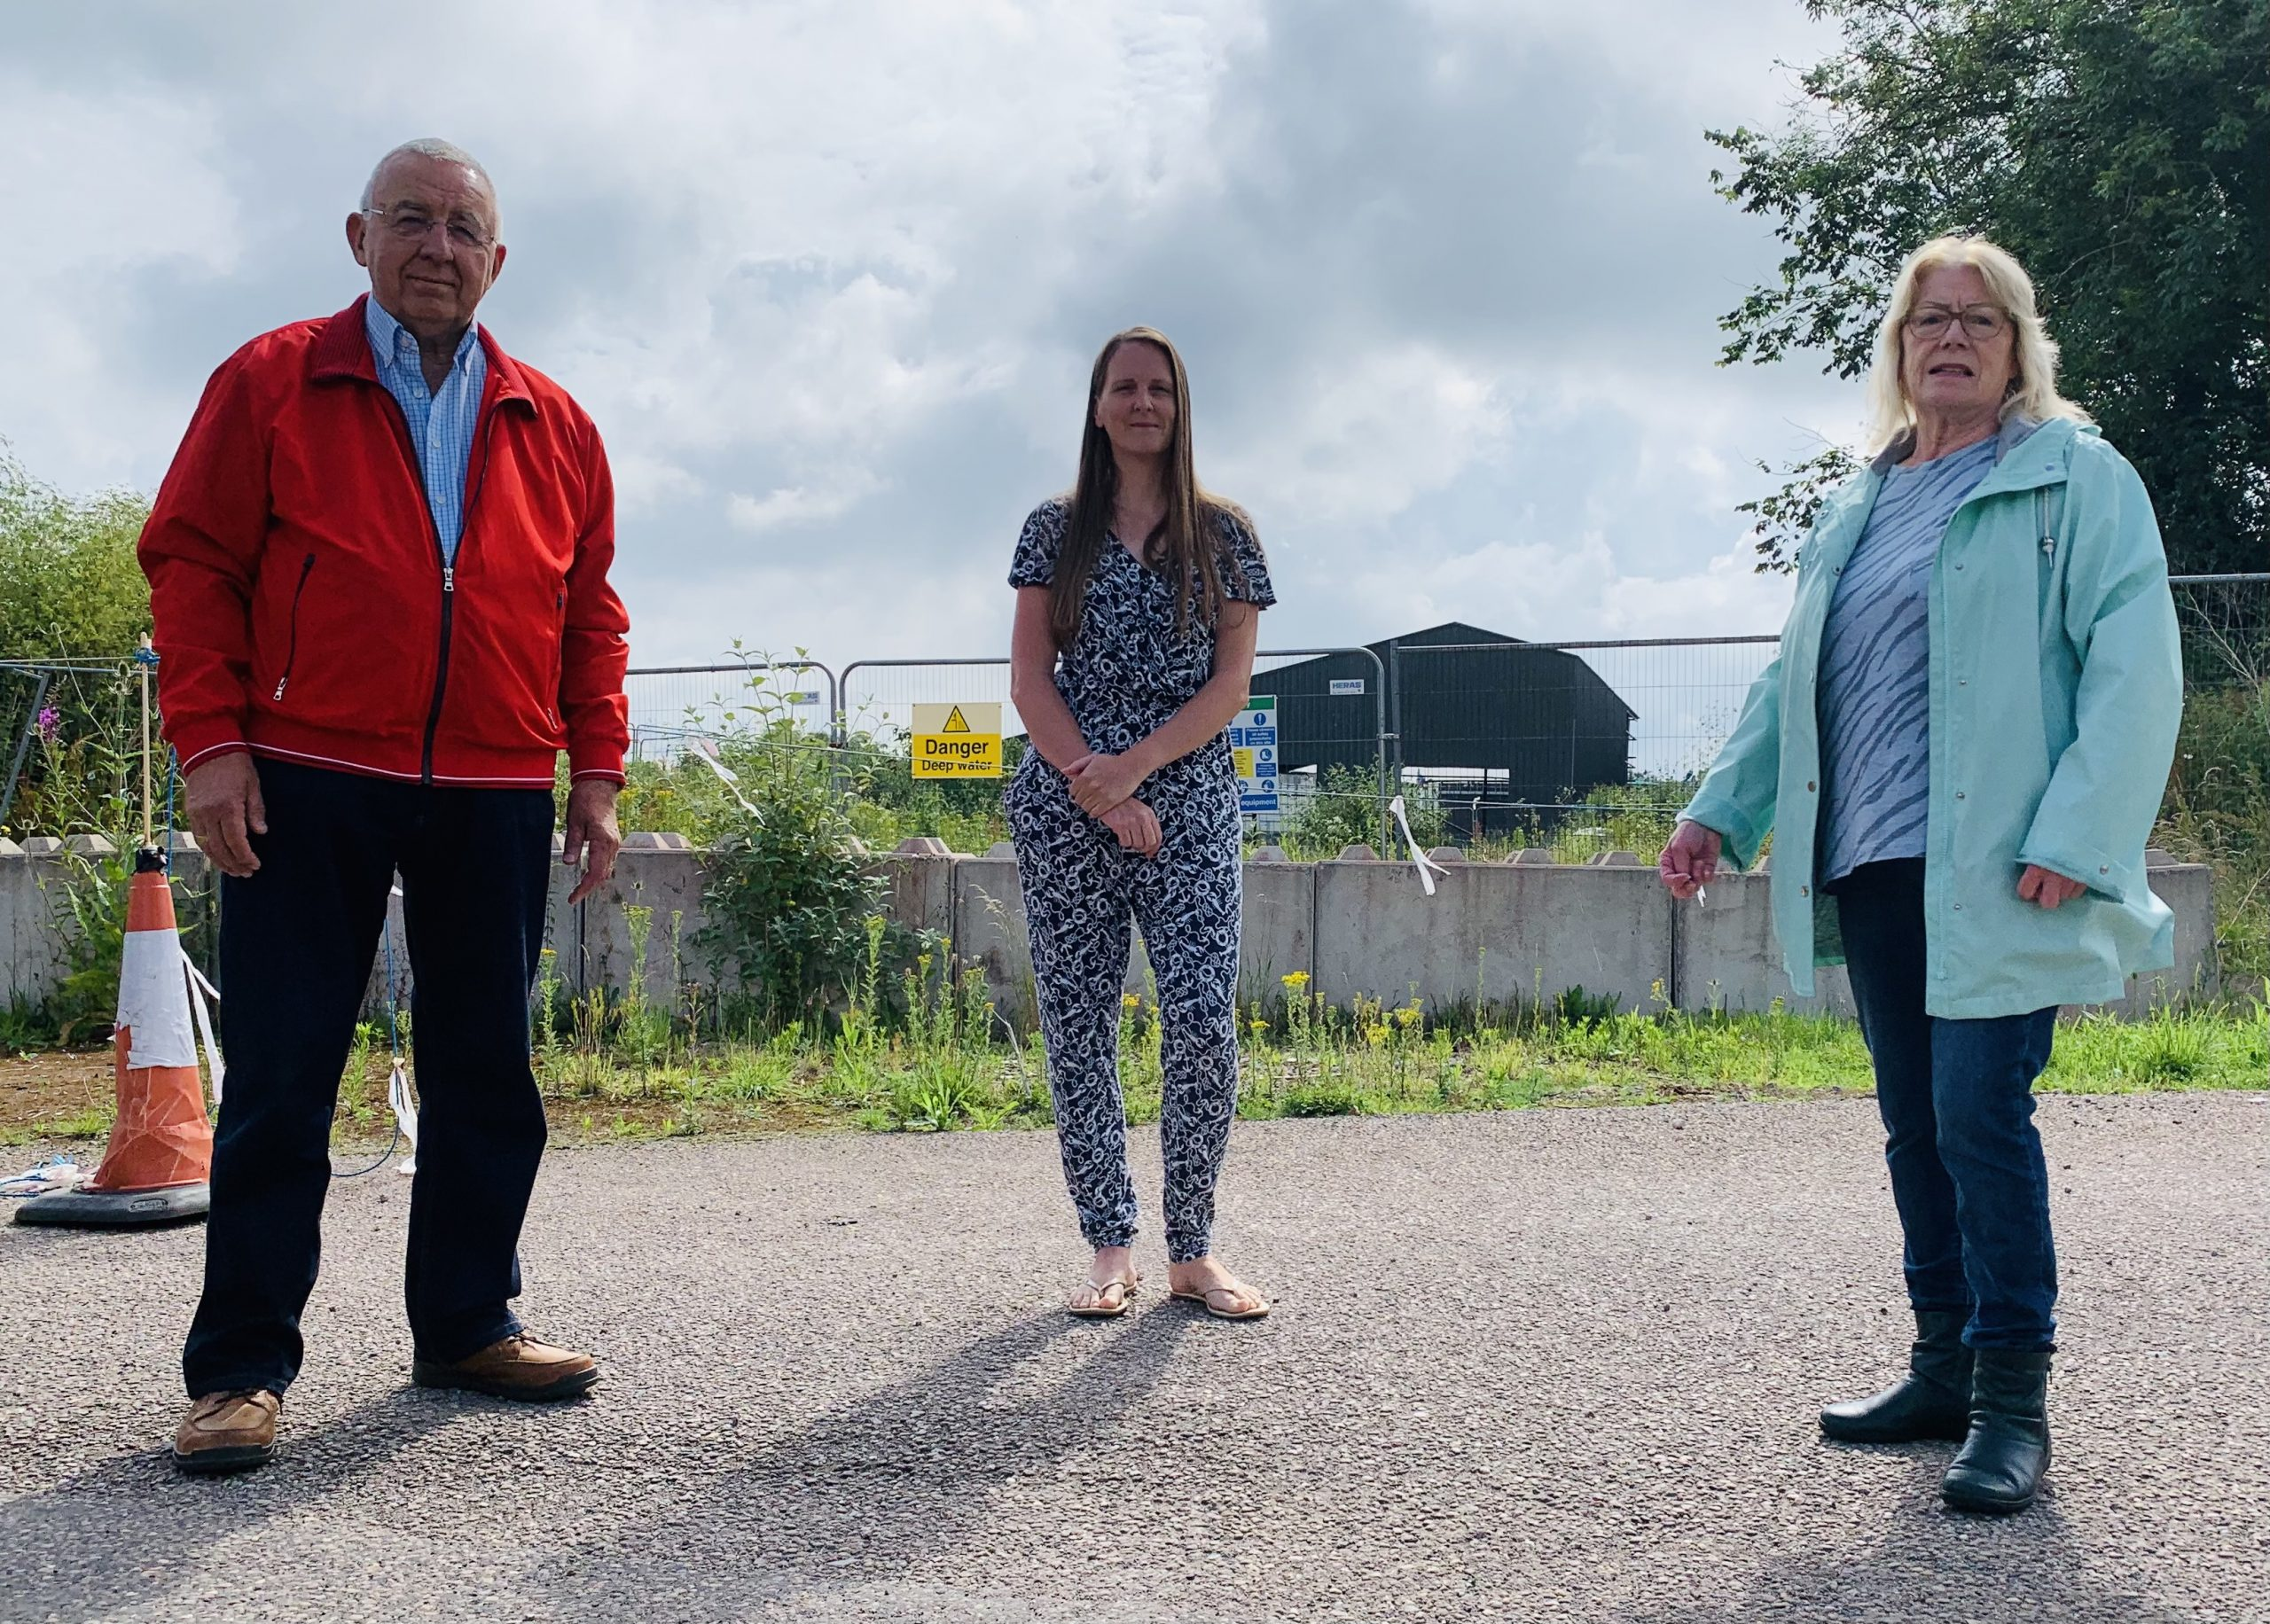 Councillors team up with activists to oppose waste processor plans